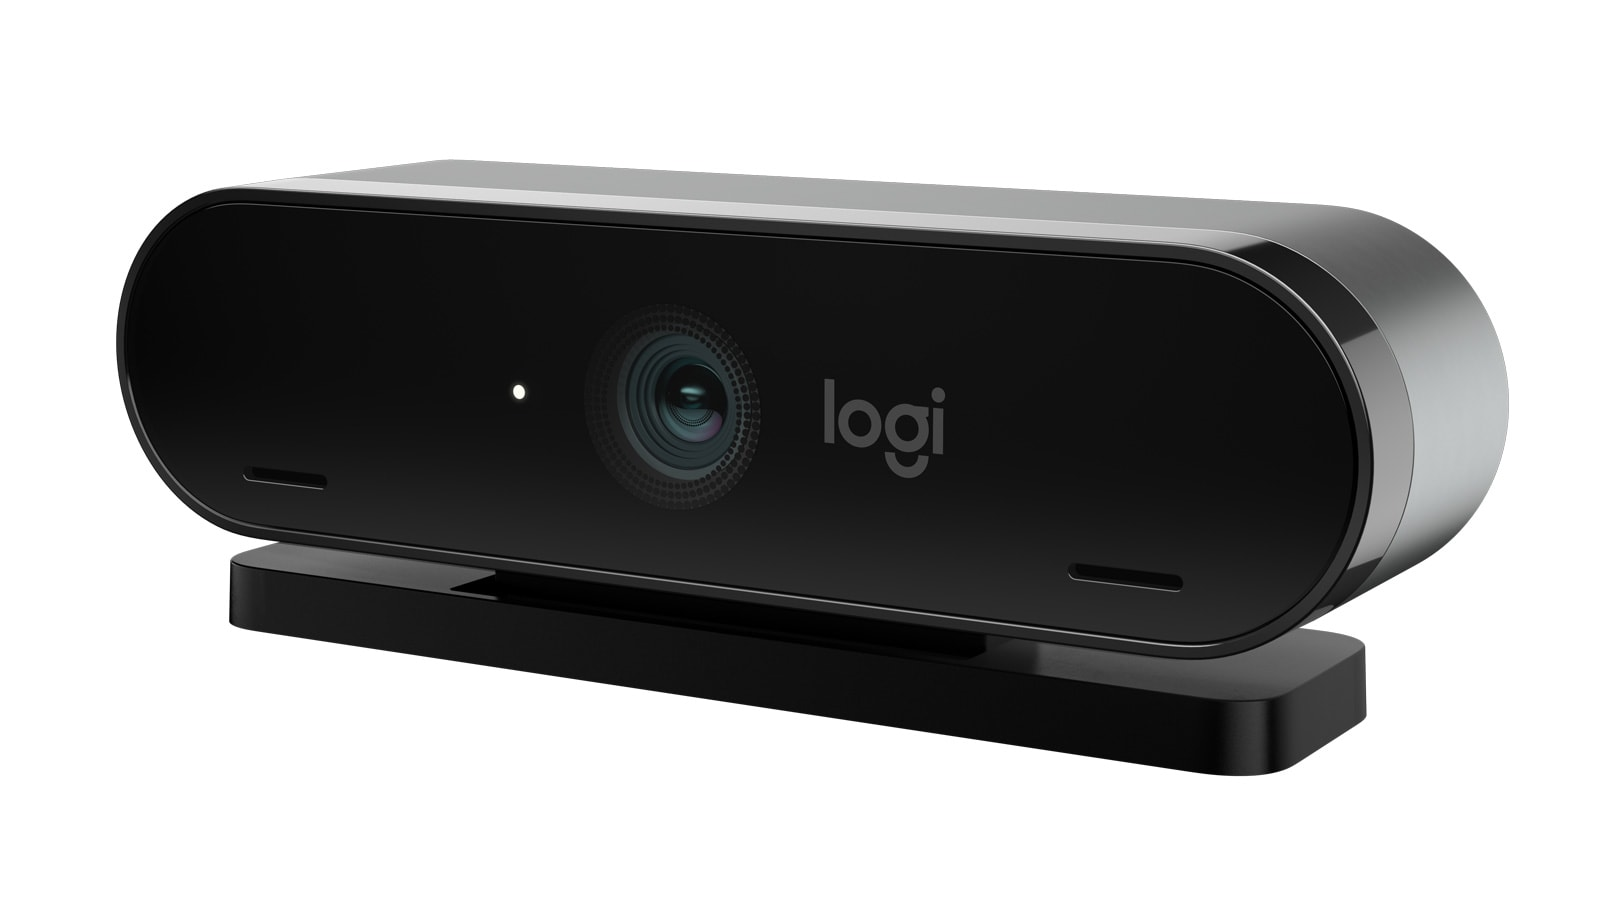 Logitech made a $200 webcam for Apple's $5,000 pro display